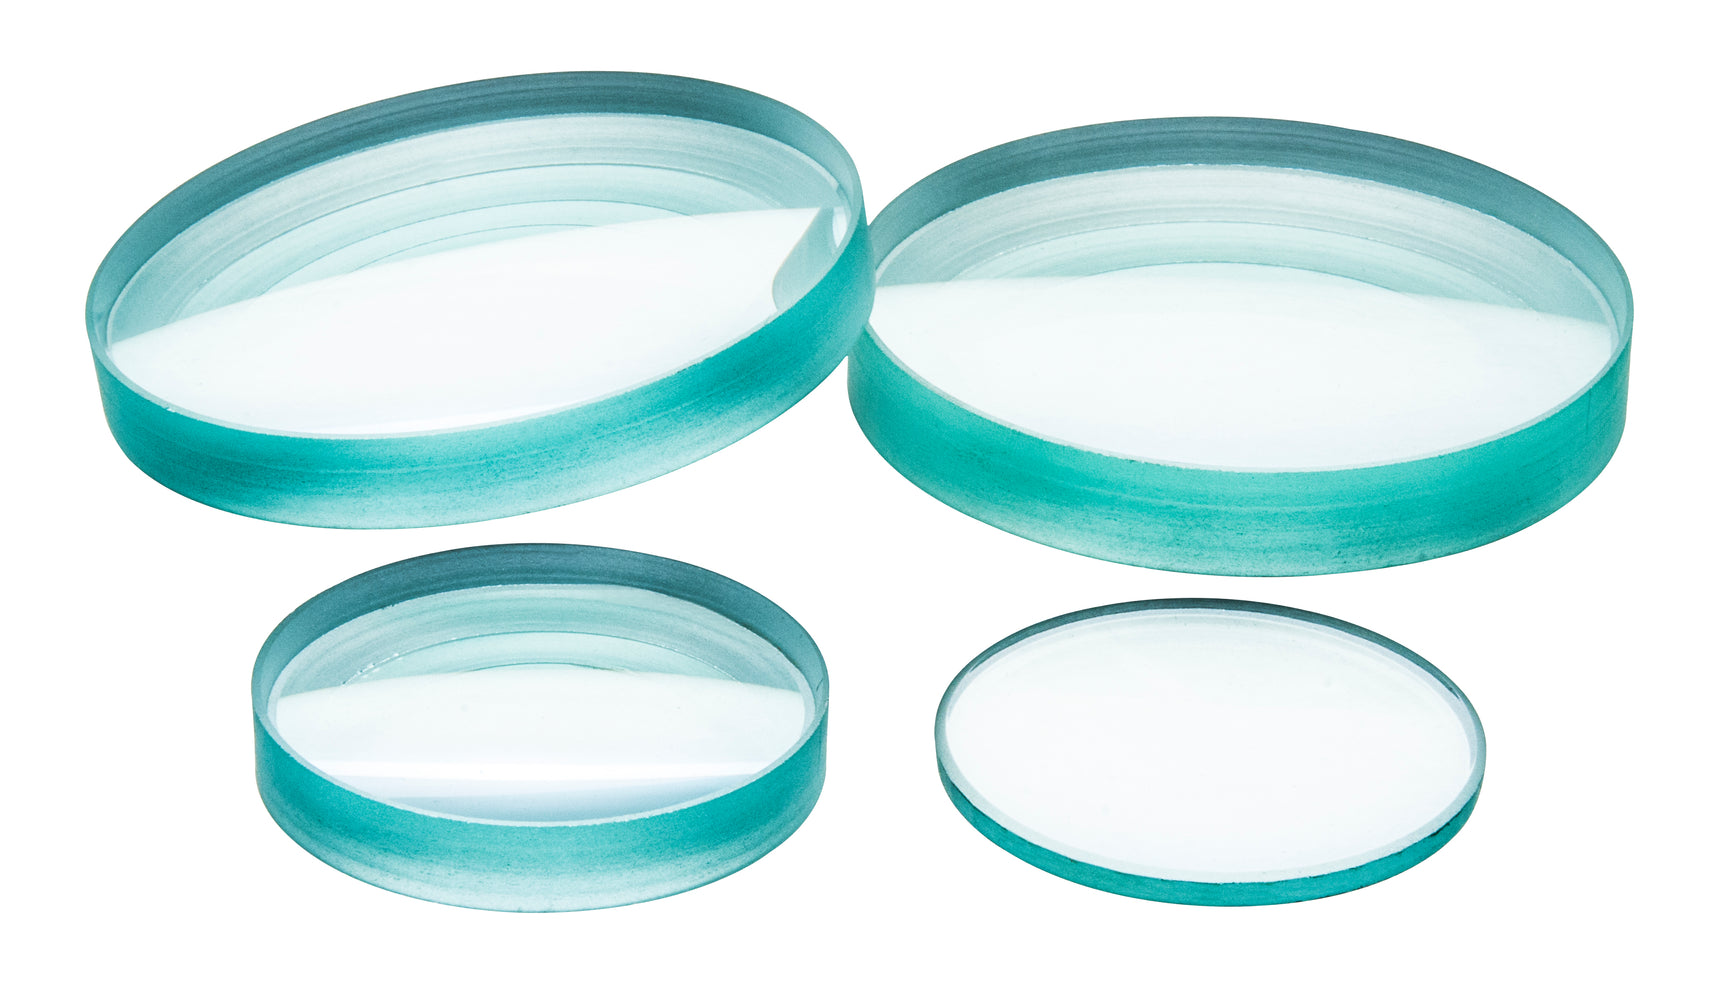 Glass Lenses - Double Concave, dia 50mm, focal length 300-1000mm